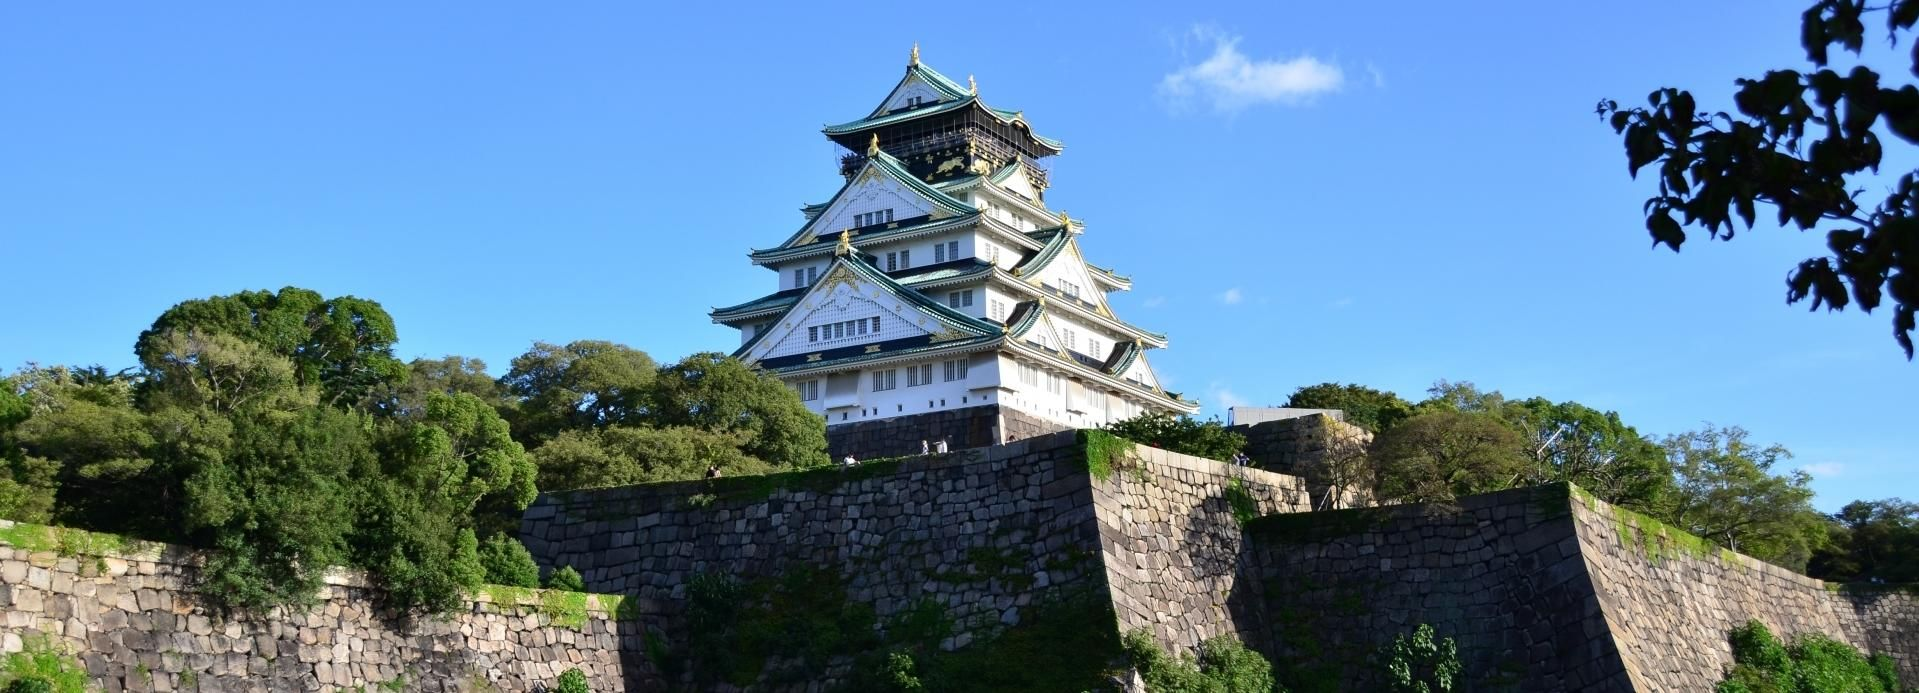 Osaka: Main Sights and Hidden Spots Guided Walking Tour